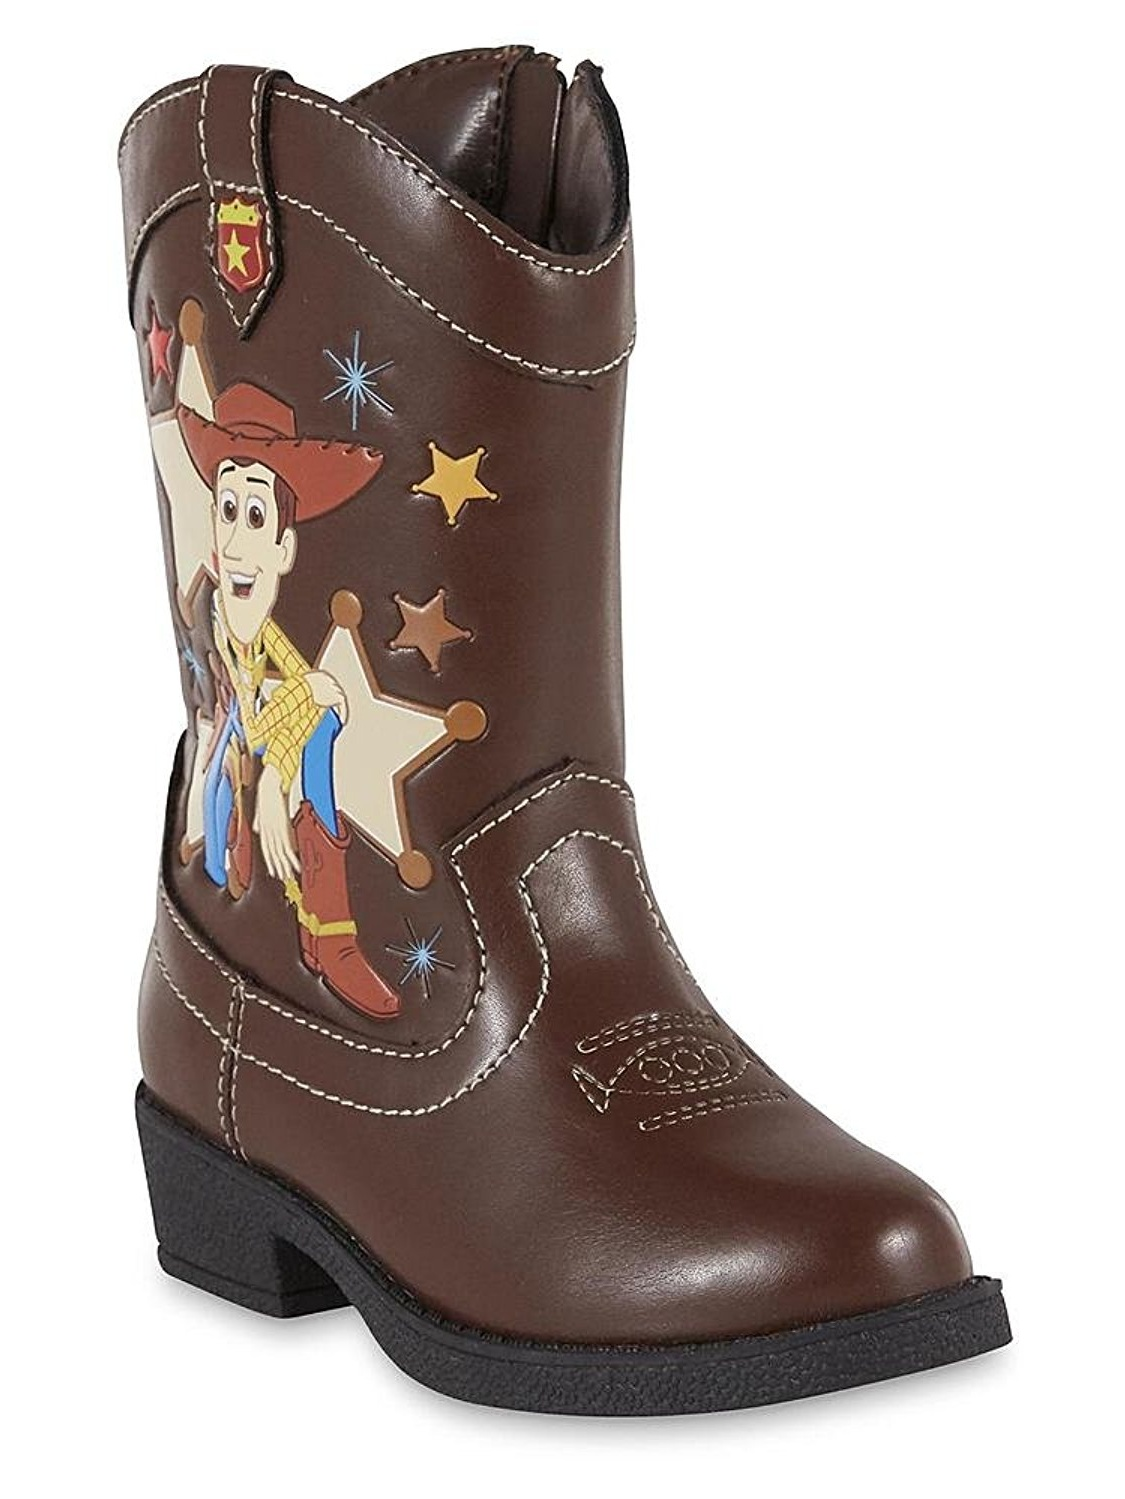 Disney/'s Toy Story Sheriff Woody Toddler Boys Boots Shoes SIZE 5, 6 or 10 NEW!